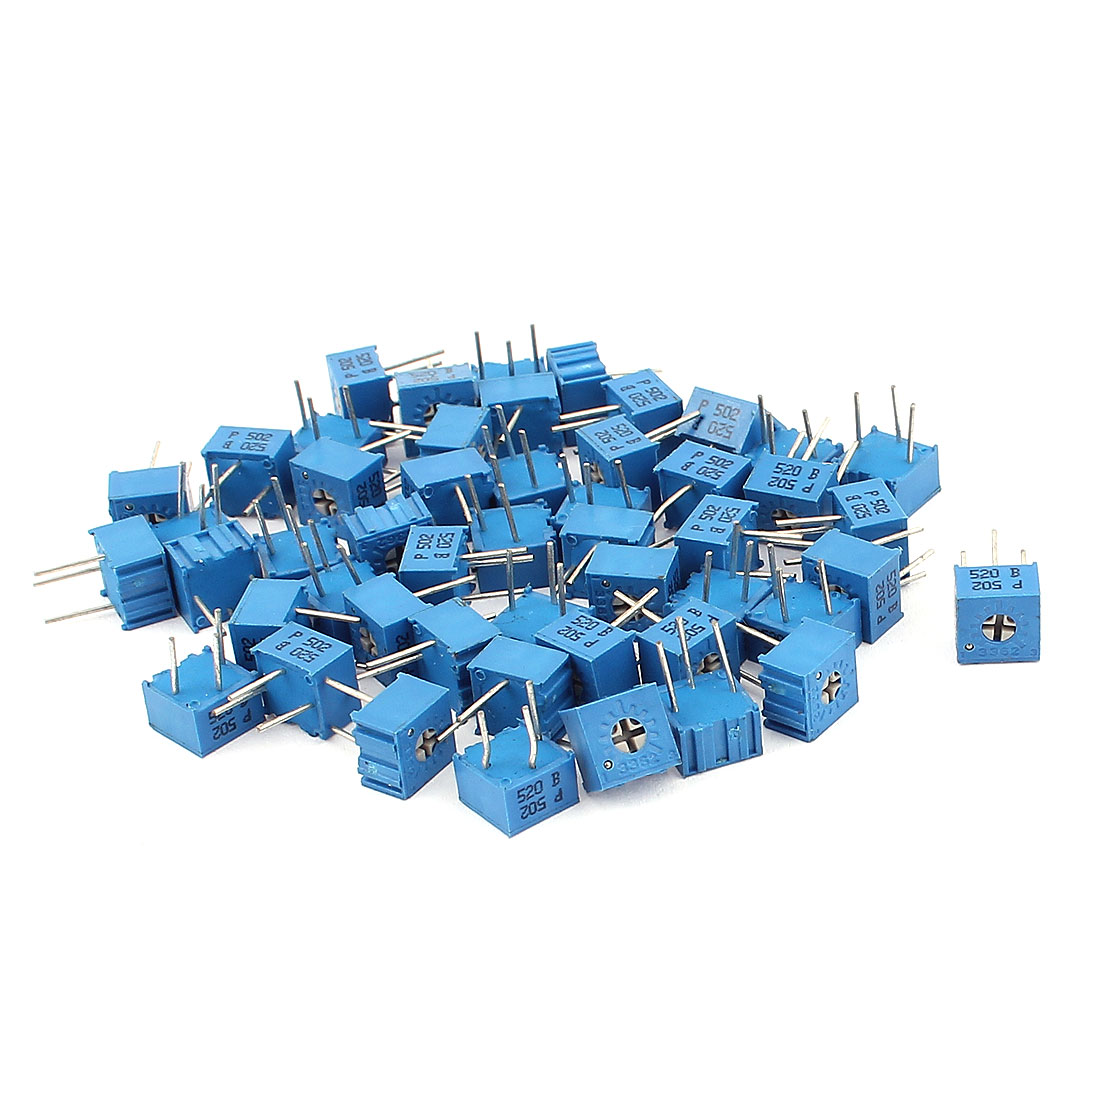 50Pcs Adjustable Potentiometer Trimmer Variable Resistor 3362P-502 5K Ohm